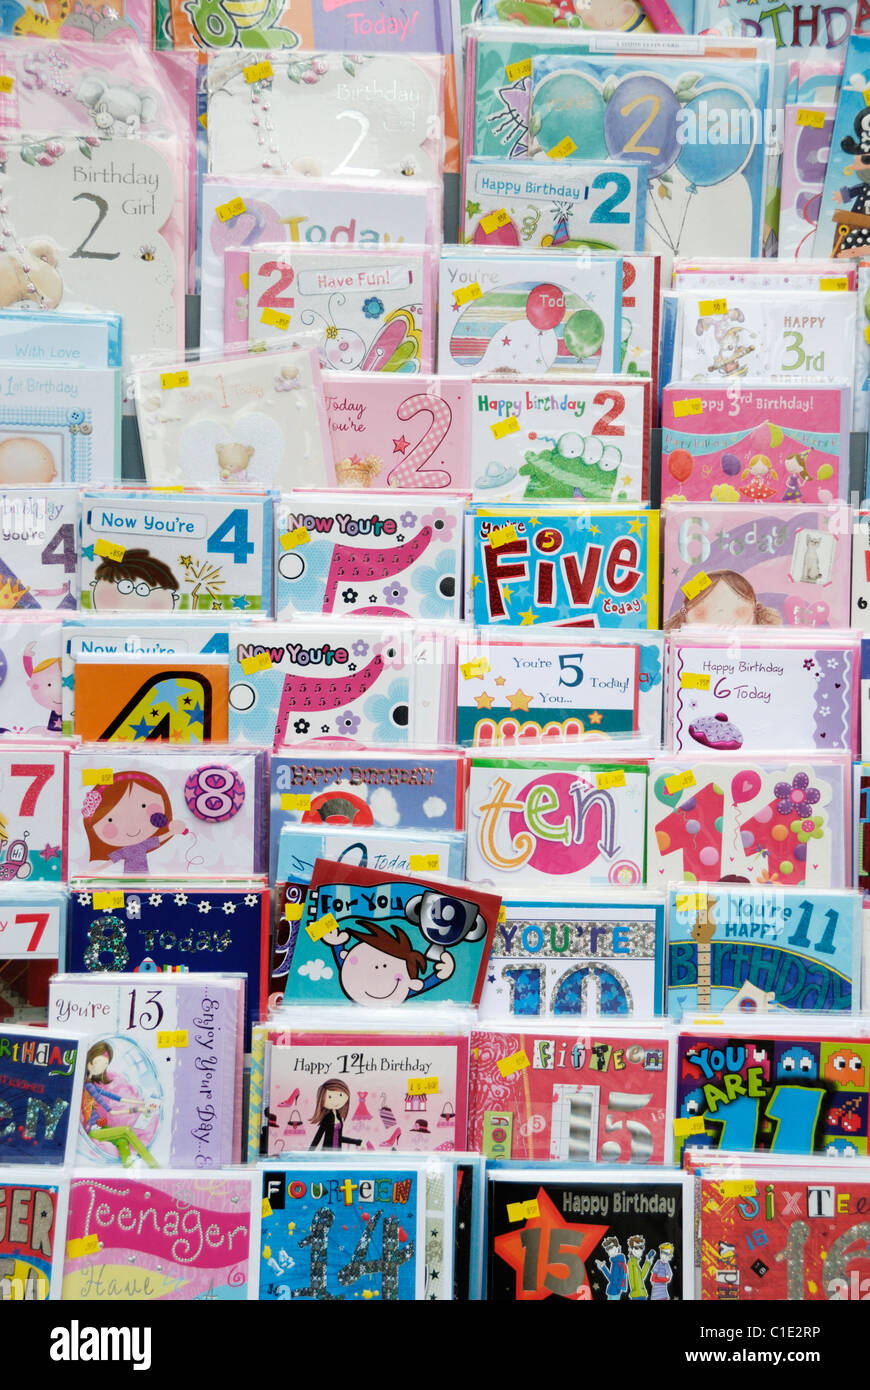 Shop Display Of Childrens Birthday Cards Stock Photo 35344954 Alamy